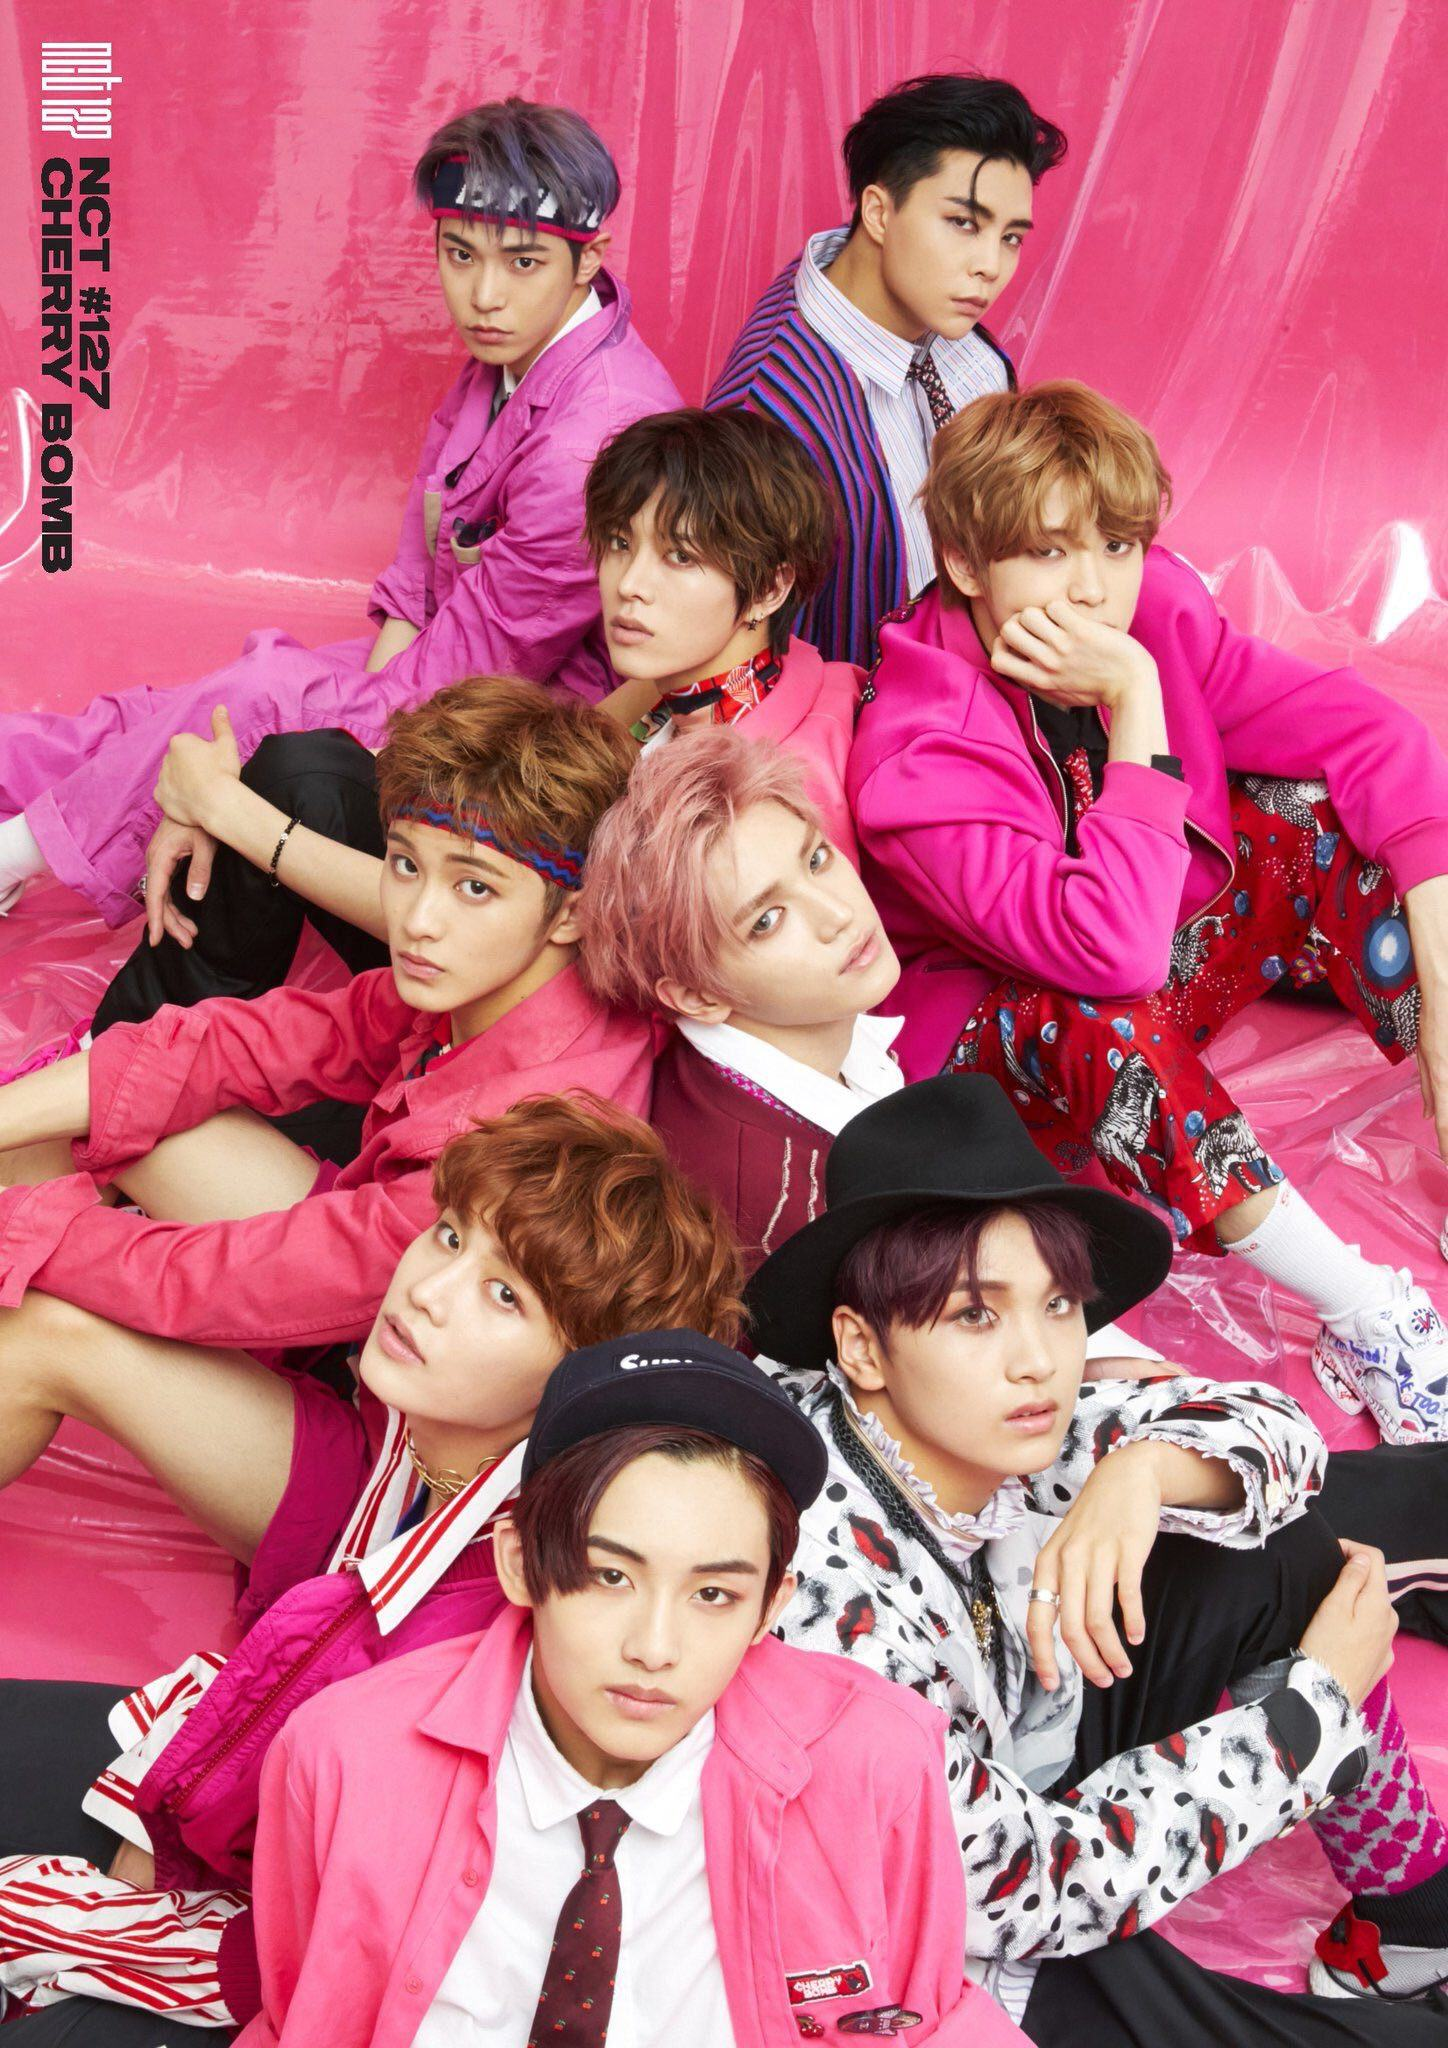 Nct 127 Is The Only Rookie Group To Perform For Spotifys